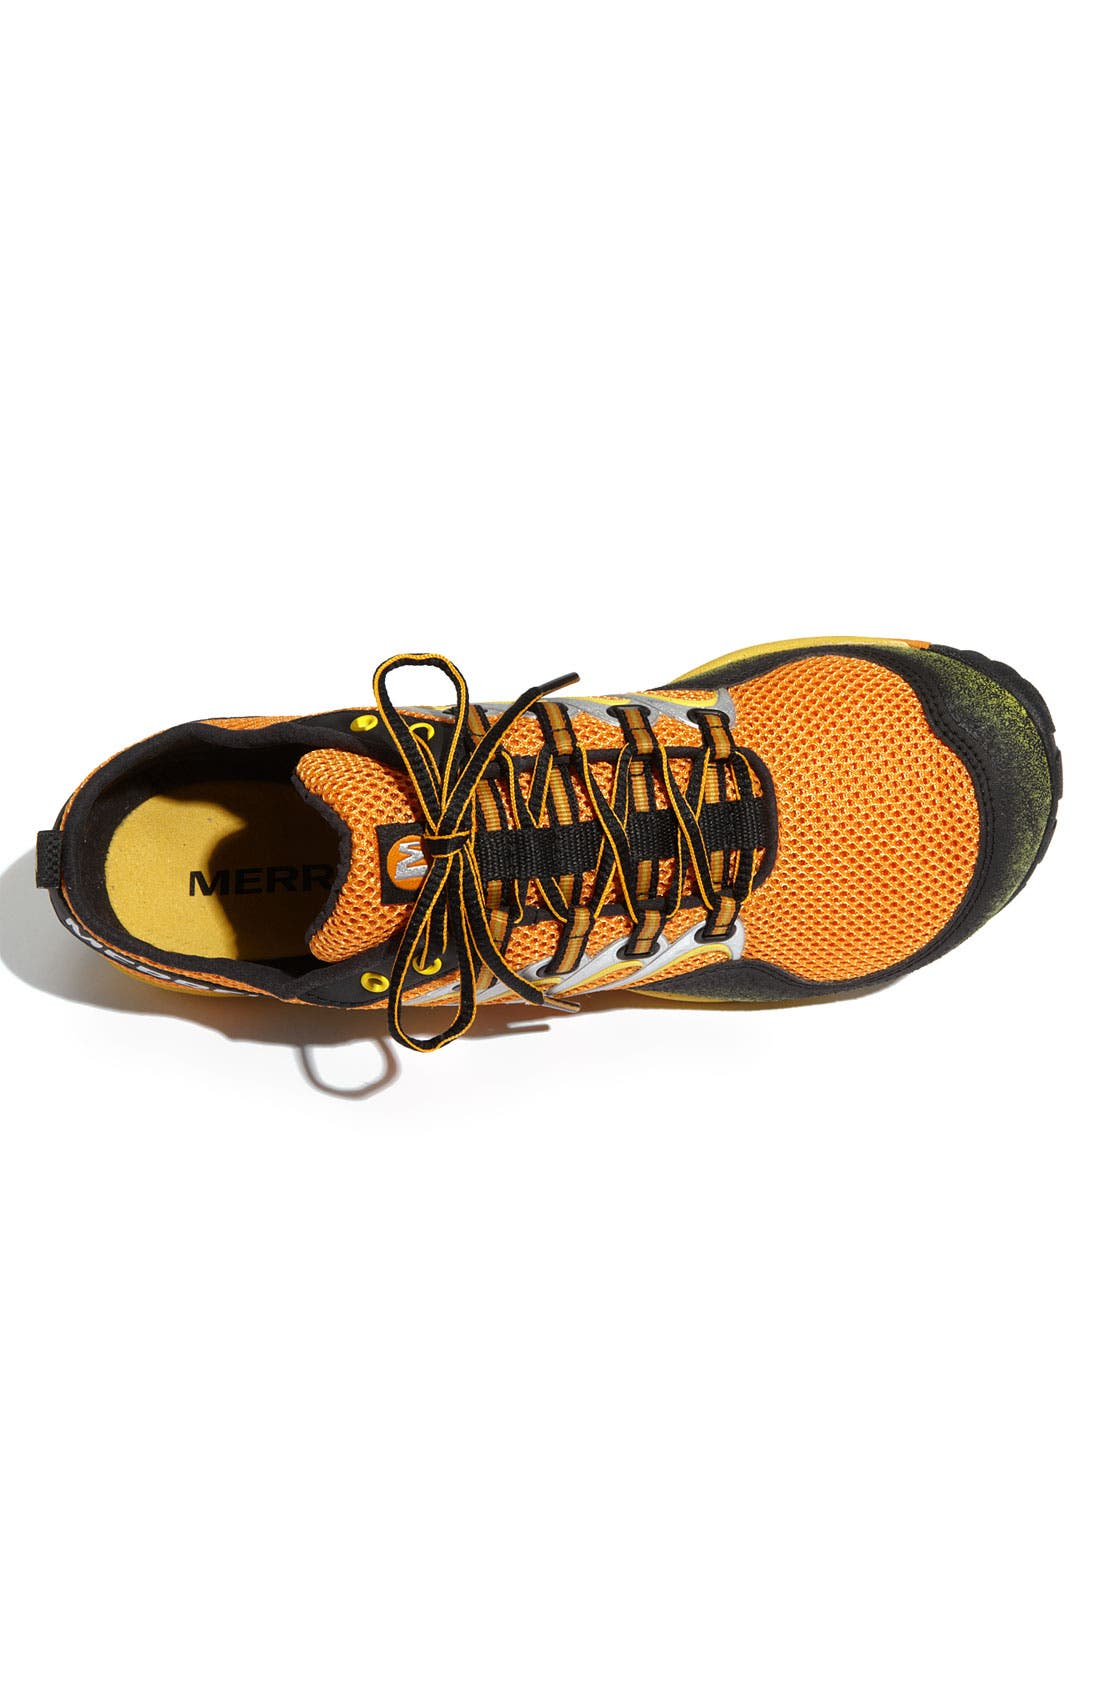 Alternate Image 3  - Merrell 'Trail Glove' Running Shoe (Men)